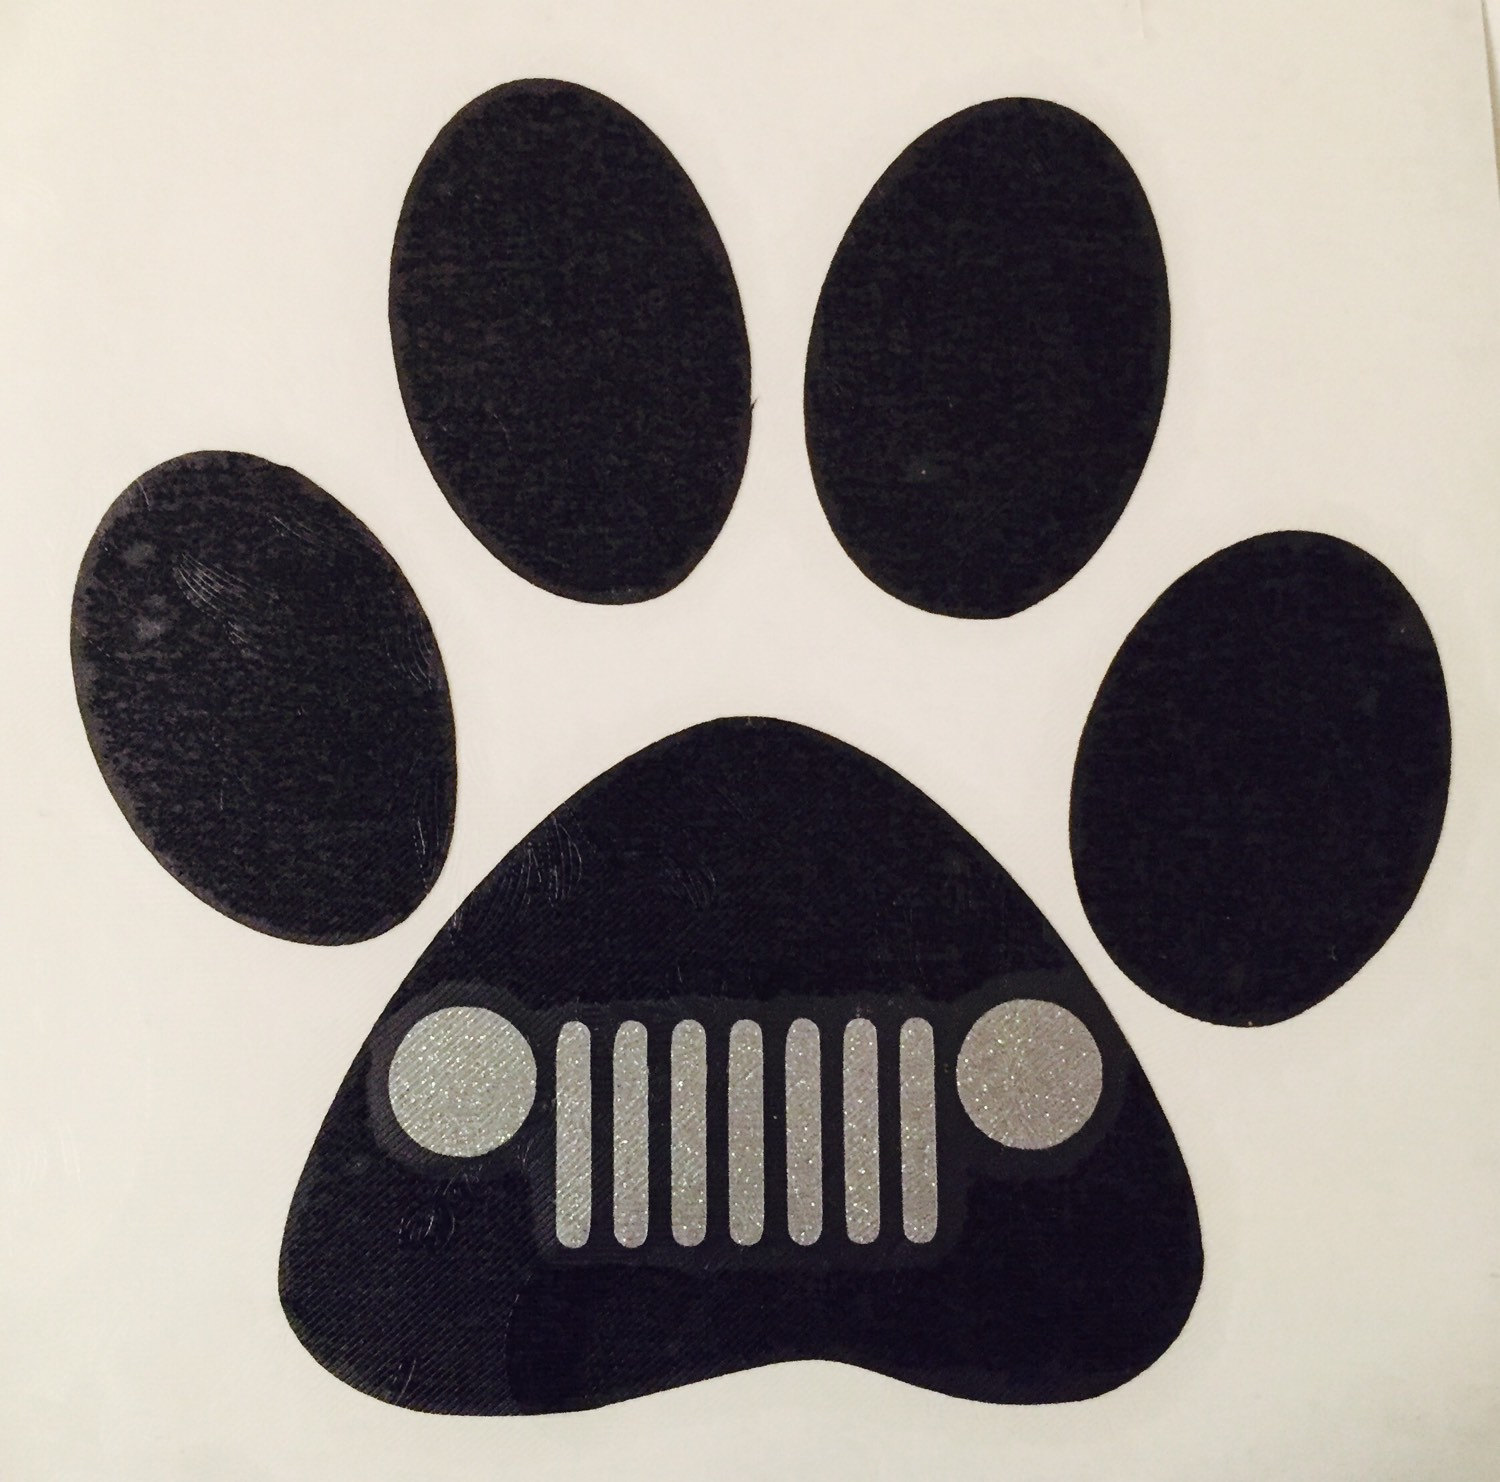 Jeep Decaldog Paw Decal Jeep Grill Dog Vinyl Decal